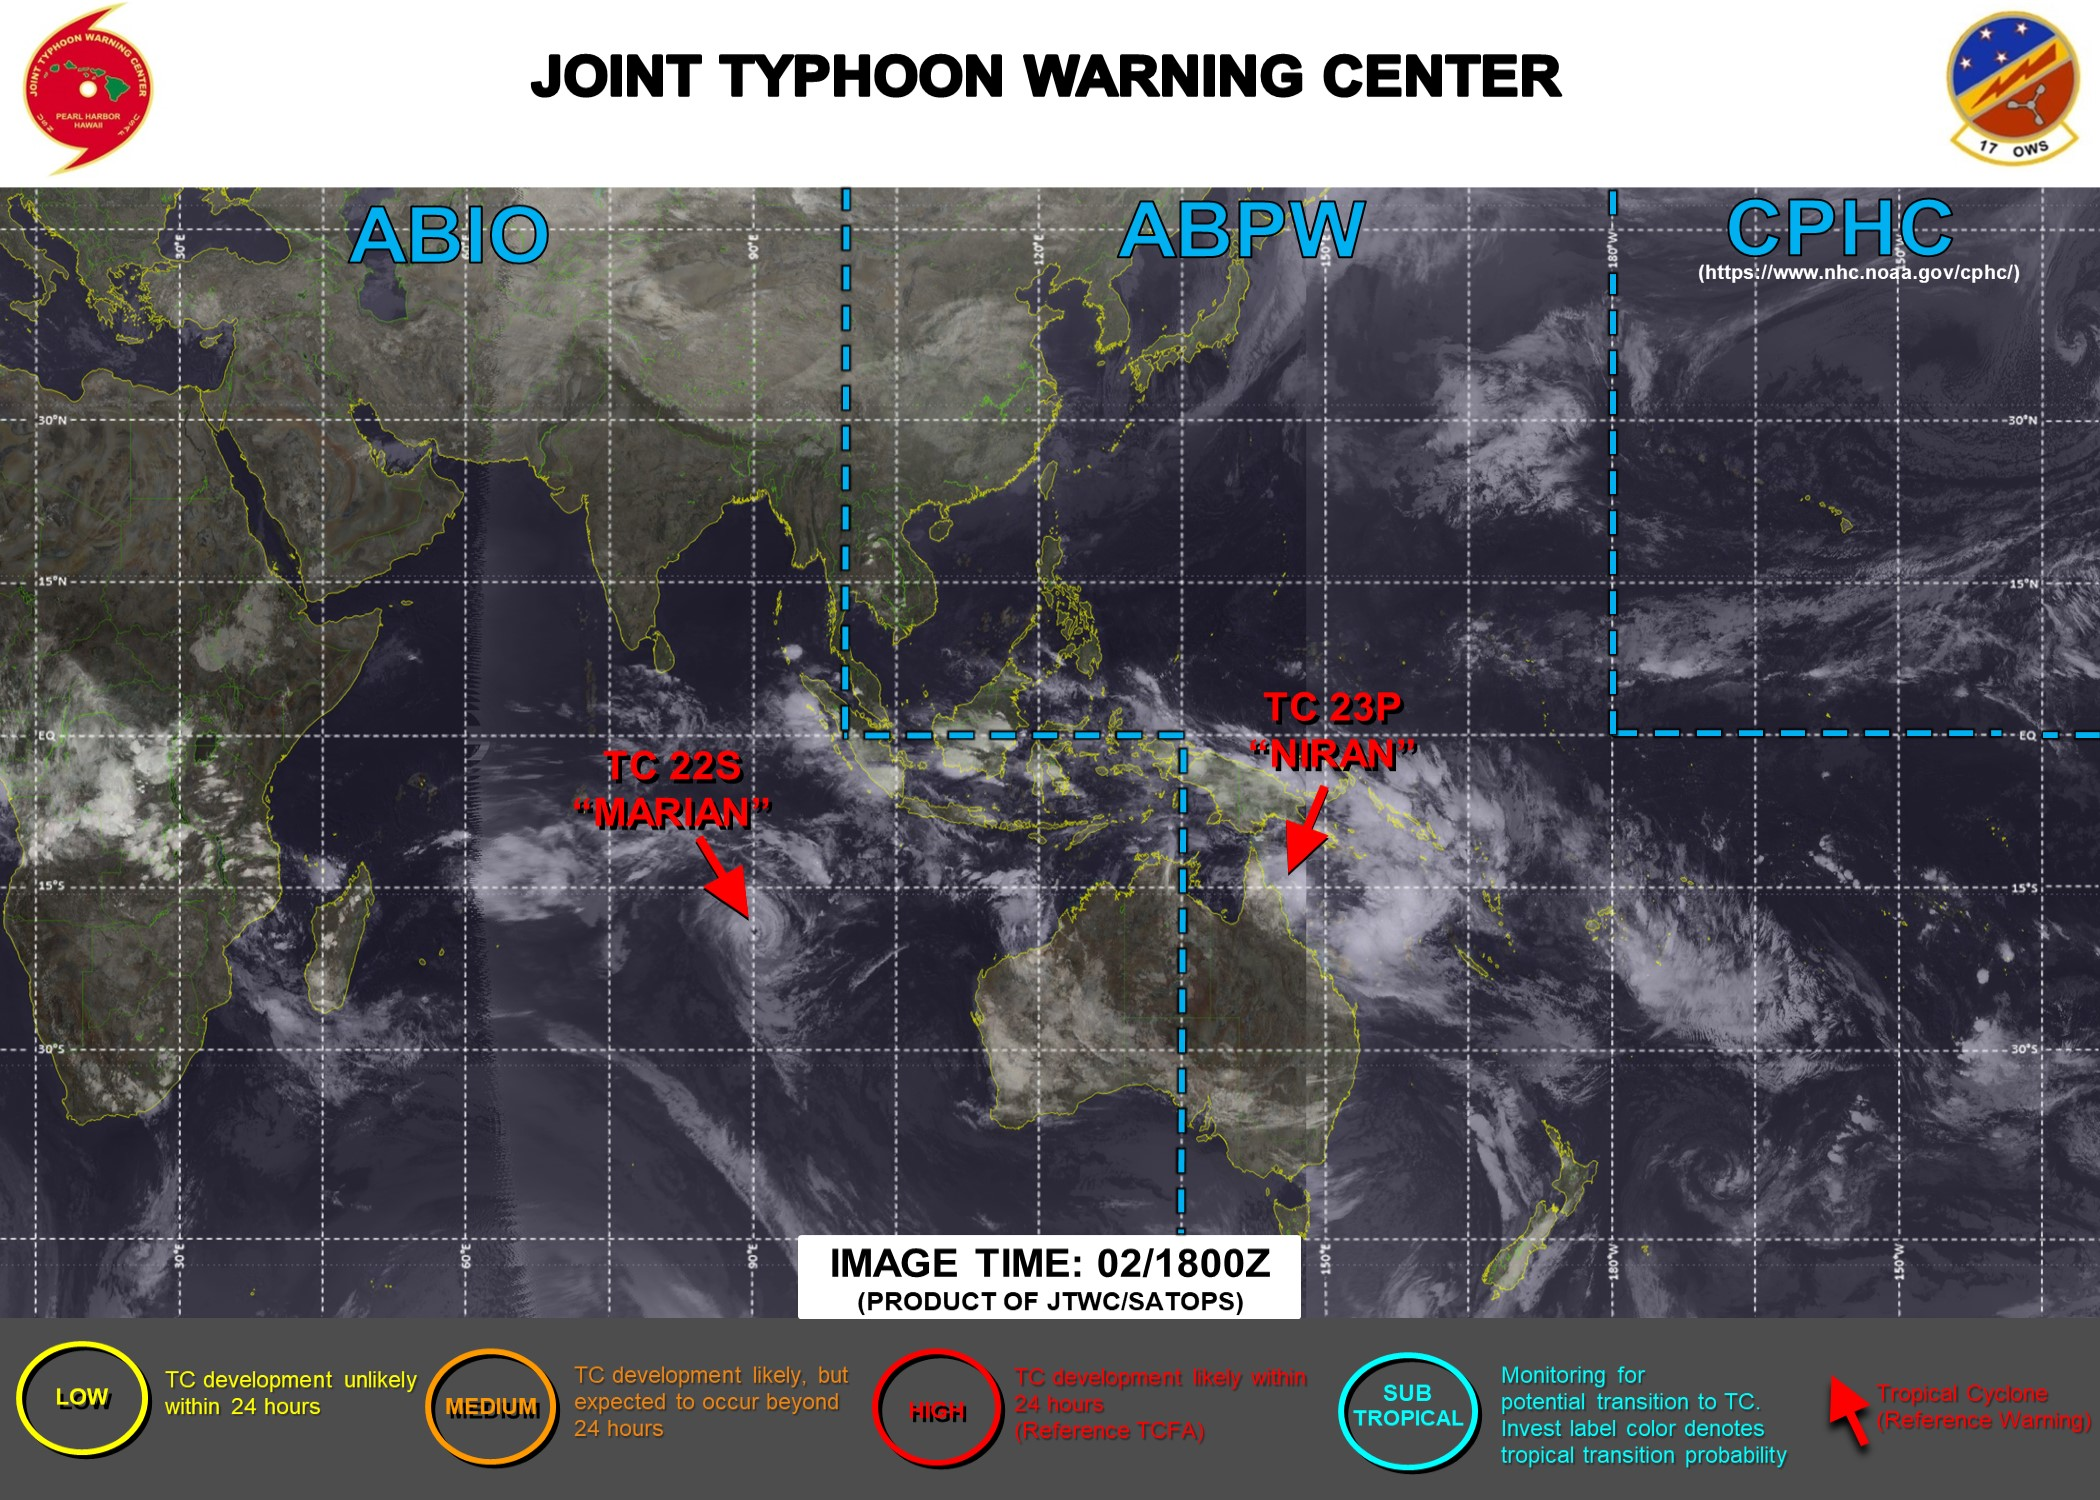 03/03UTC. JTWC IS ISSUING 3HOURLY WARNING ON TC 23P(NIRAN) AND 12HOURLY WARNINGS ON TC 22S(MARIAN). 3 HOURLY SATELLITE BULLETINS ARE ISSUED FOR BOTH SYSTEMS.